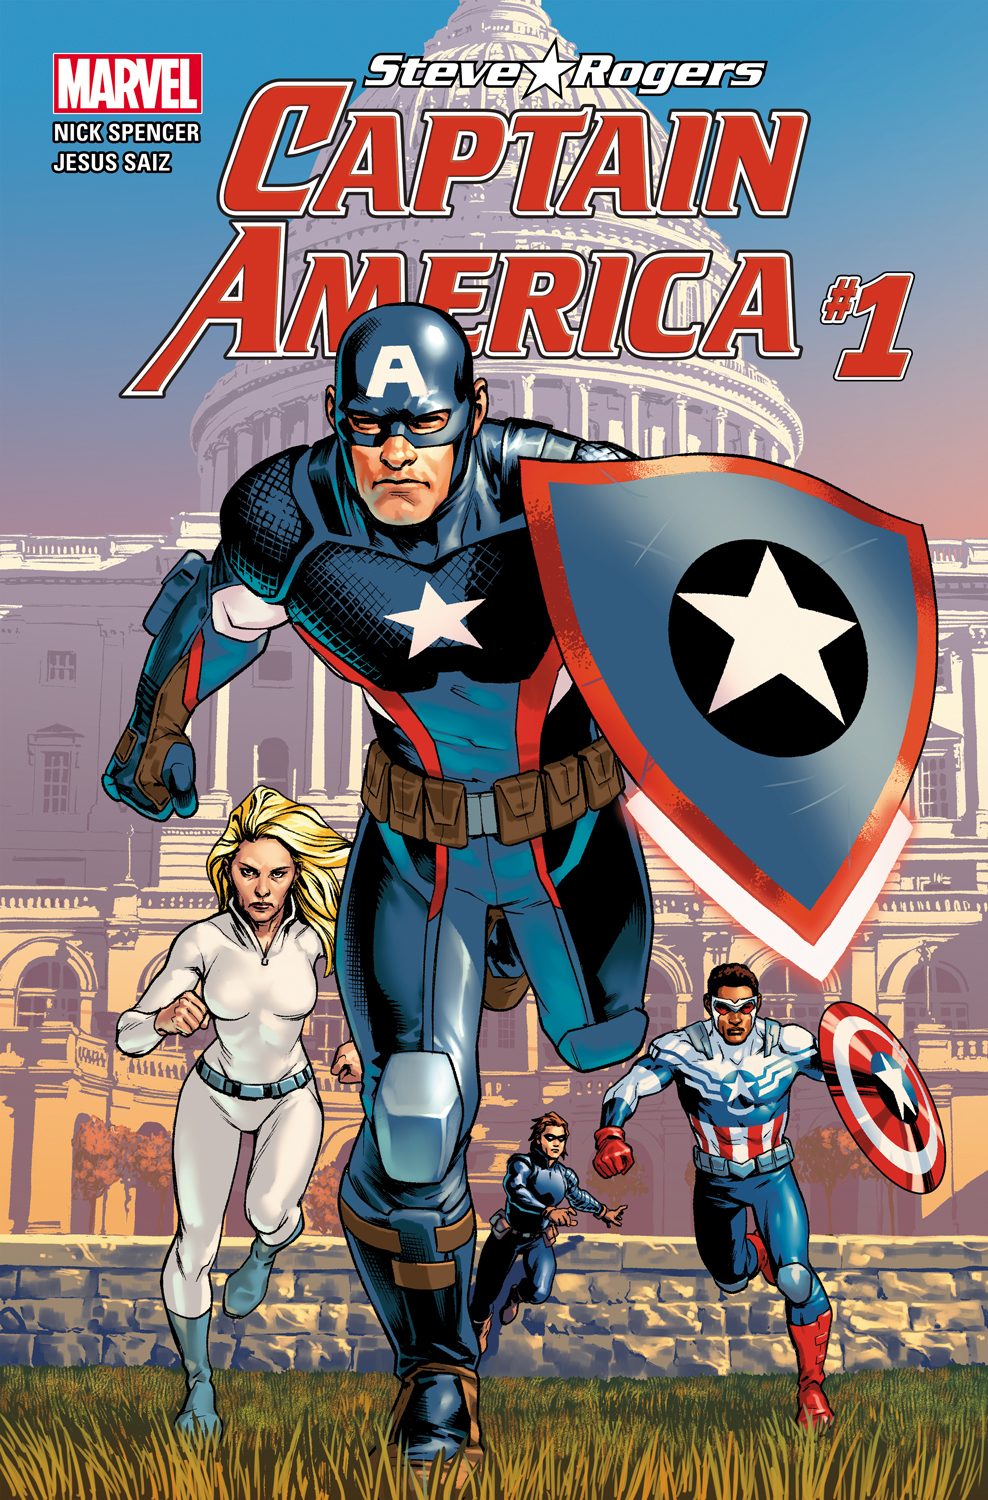 Image result for steve rogers captain america 1